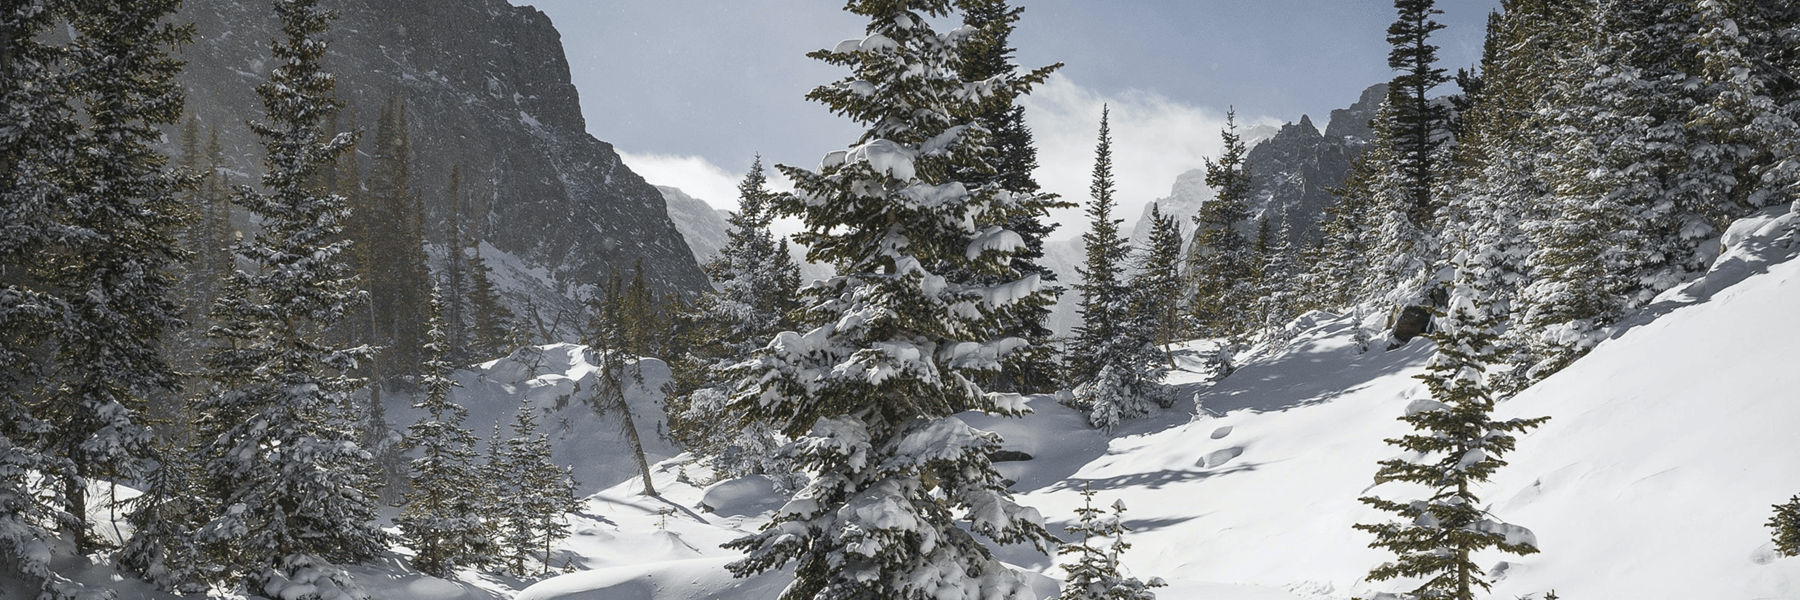 Snowy scene at Glacier National Park, by Andrew Gloor on Unsplash.com